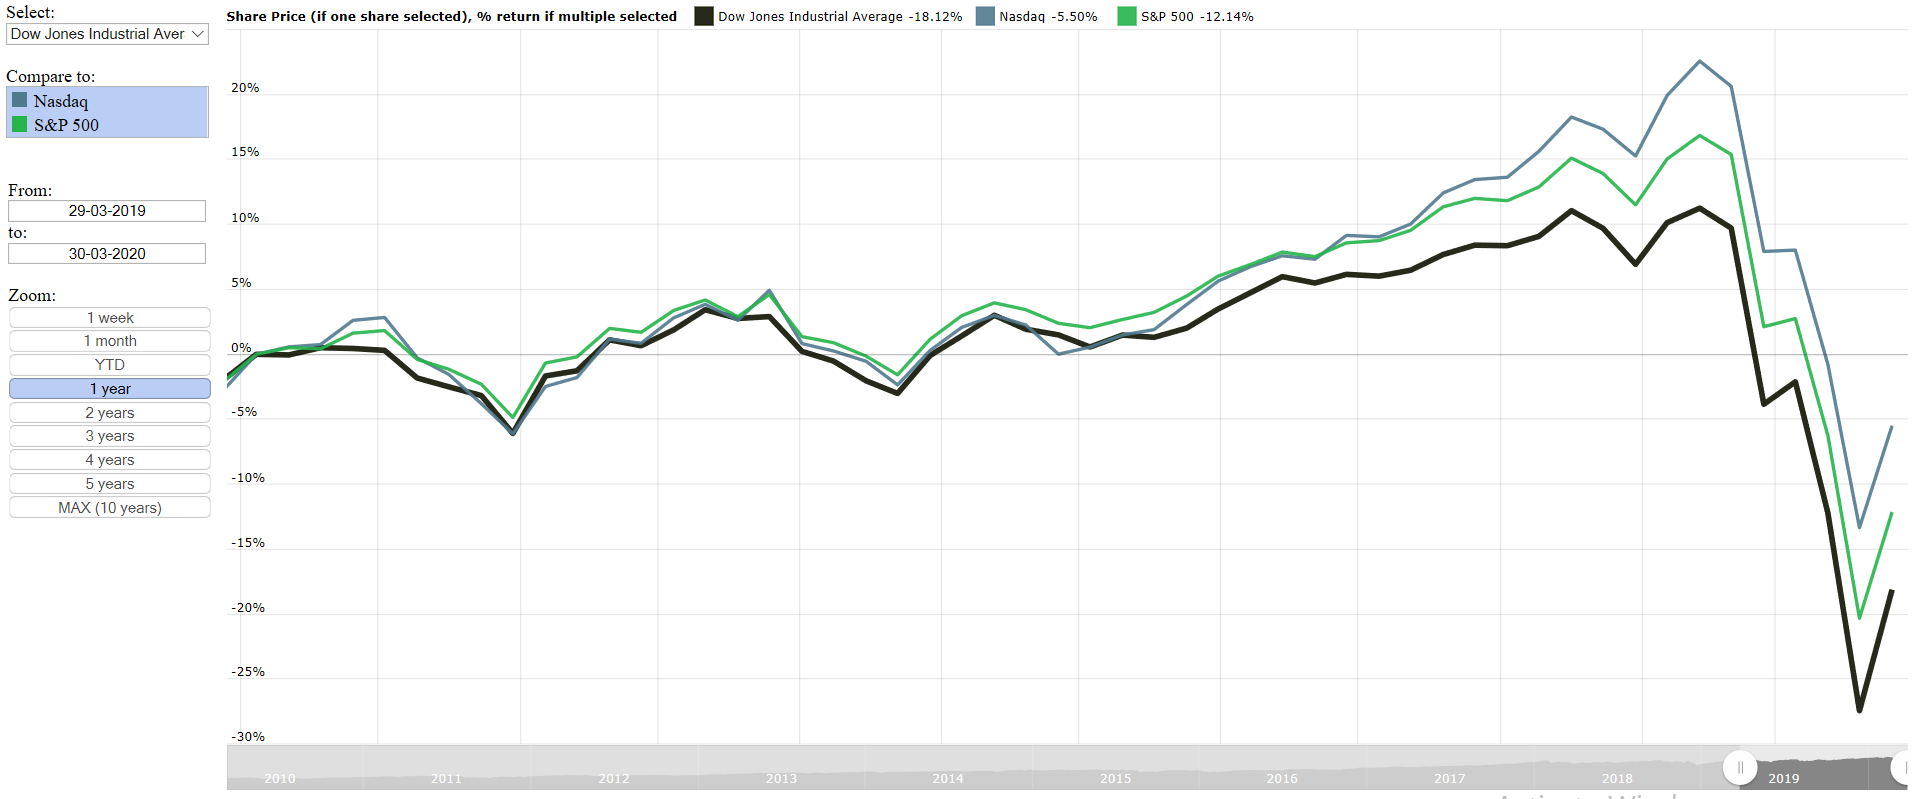 Dow Jones Industrial Average (DJIA) vs S&P 500 vs Nasdaq over the last year